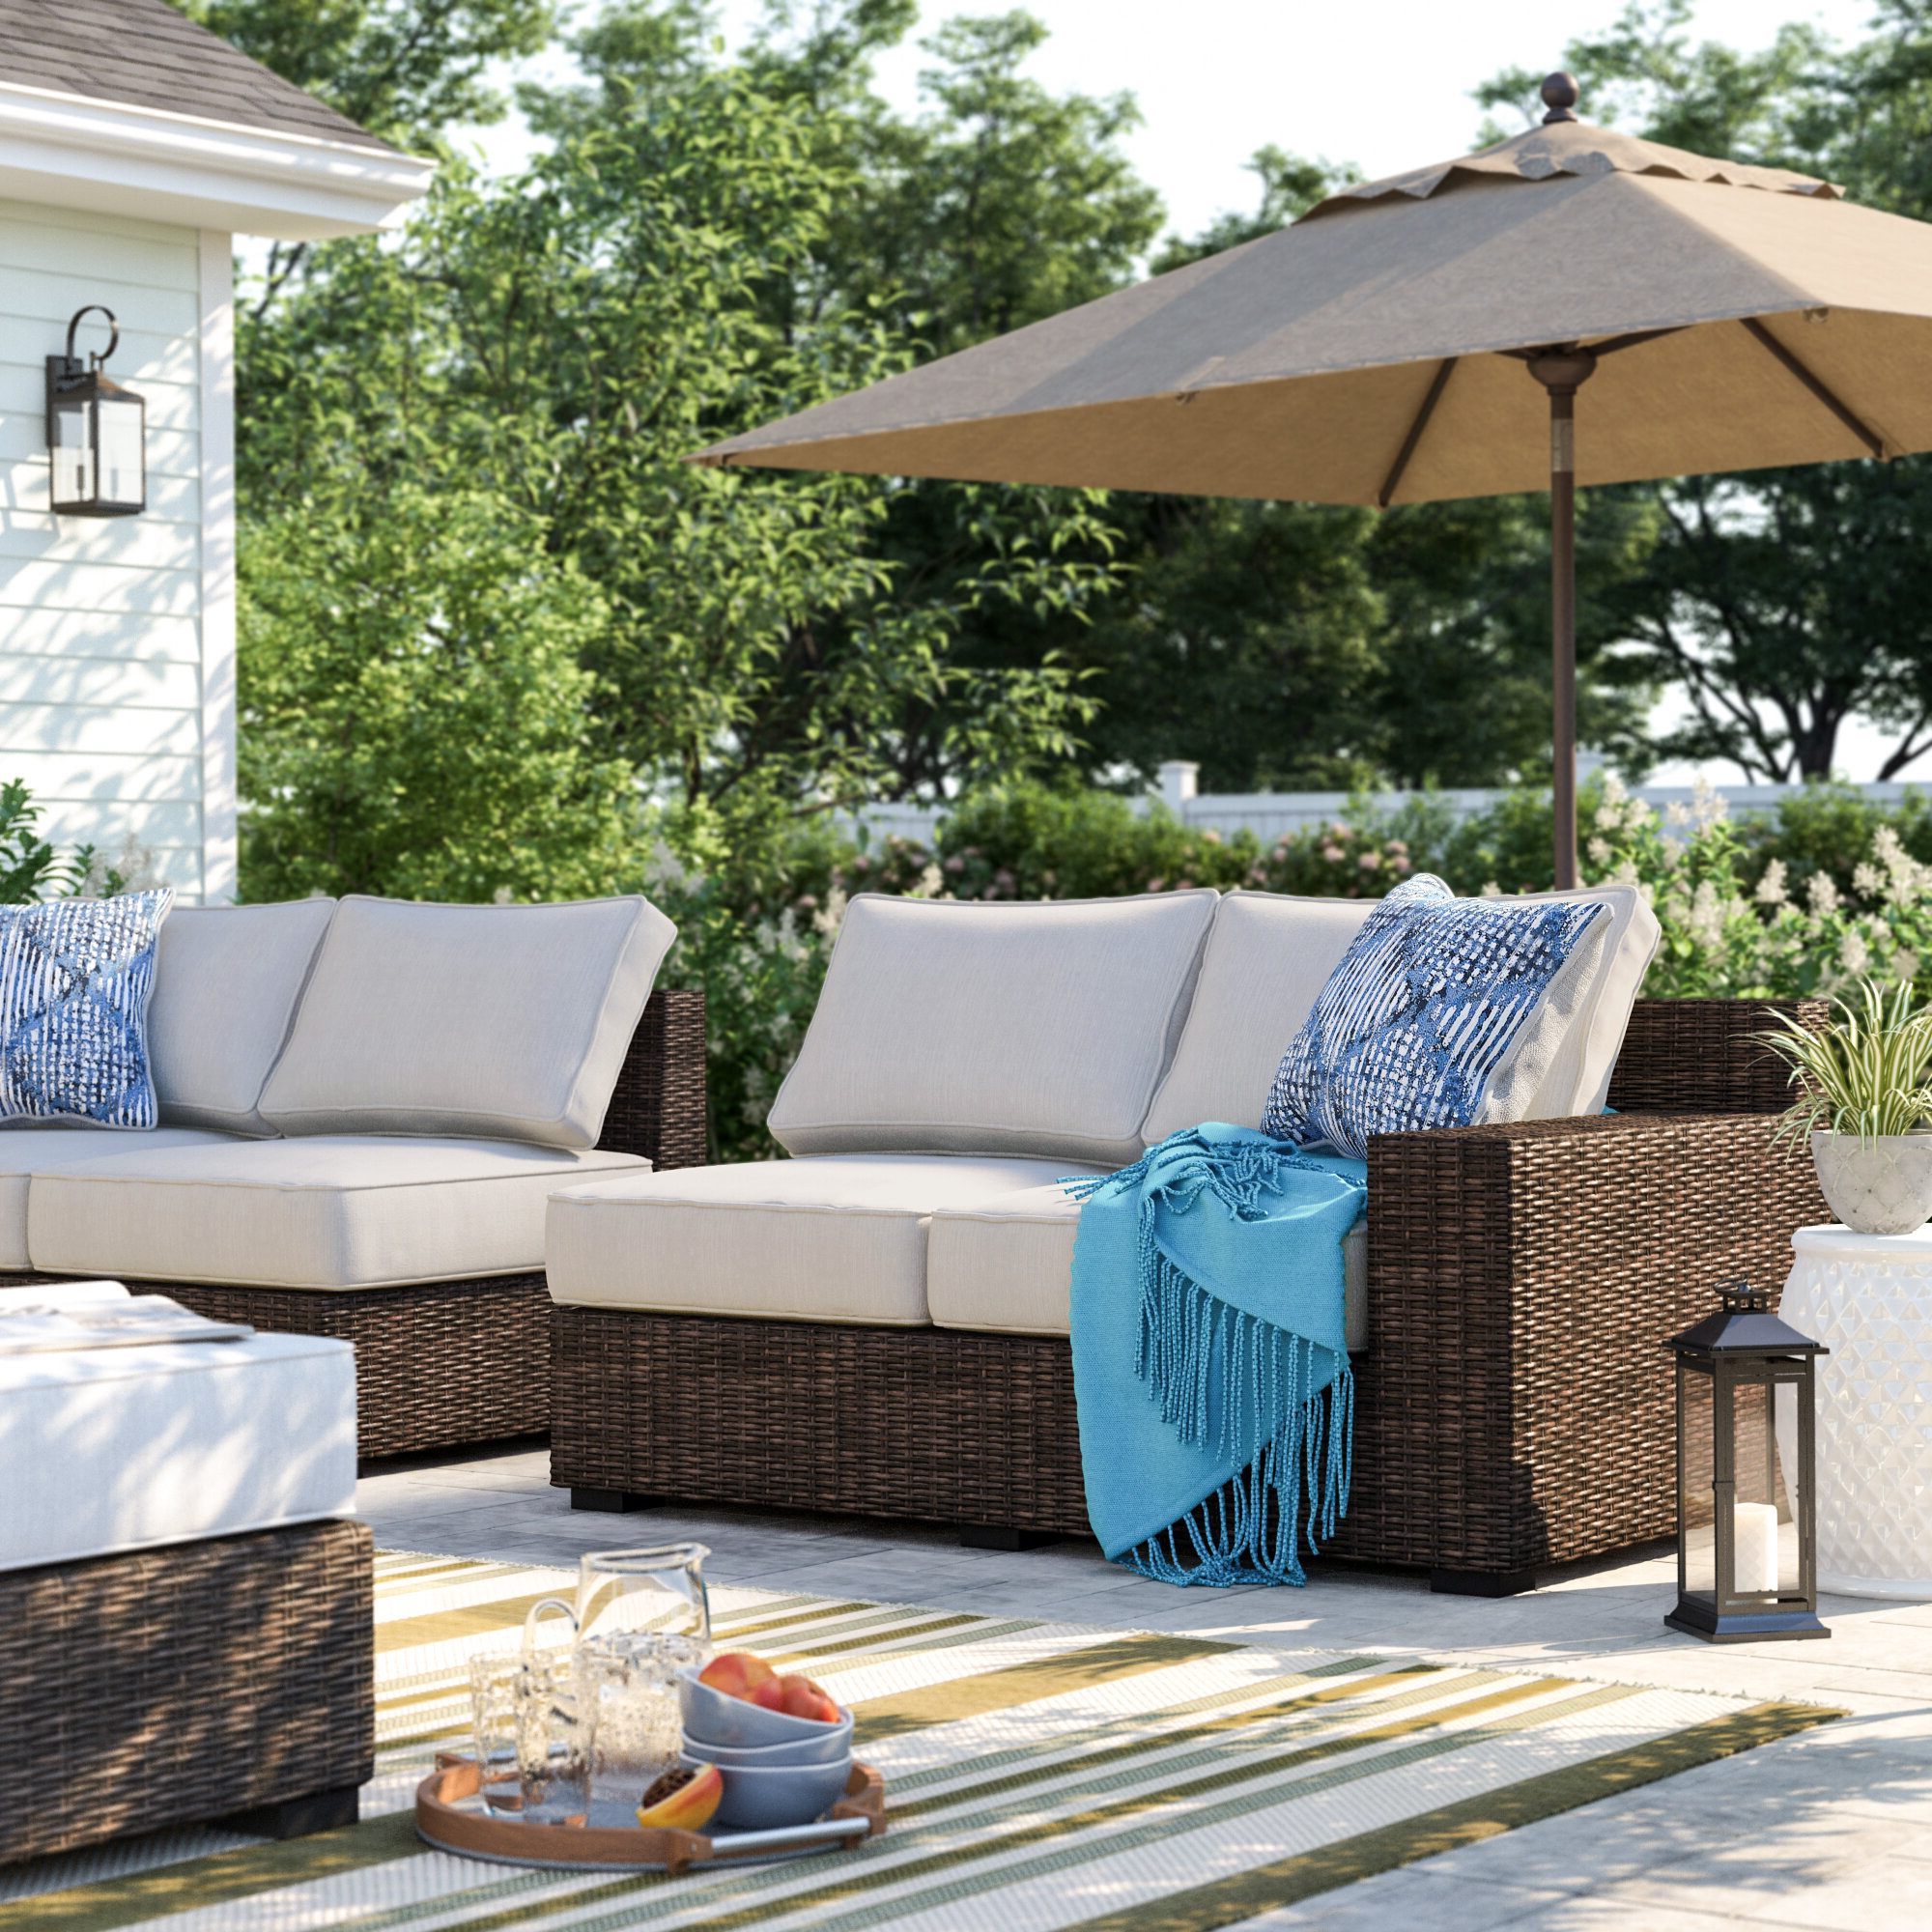 Oreland Patio Sofas With Cushions Throughout Famous Oreland Loveseat With Cushions (View 5 of 20)